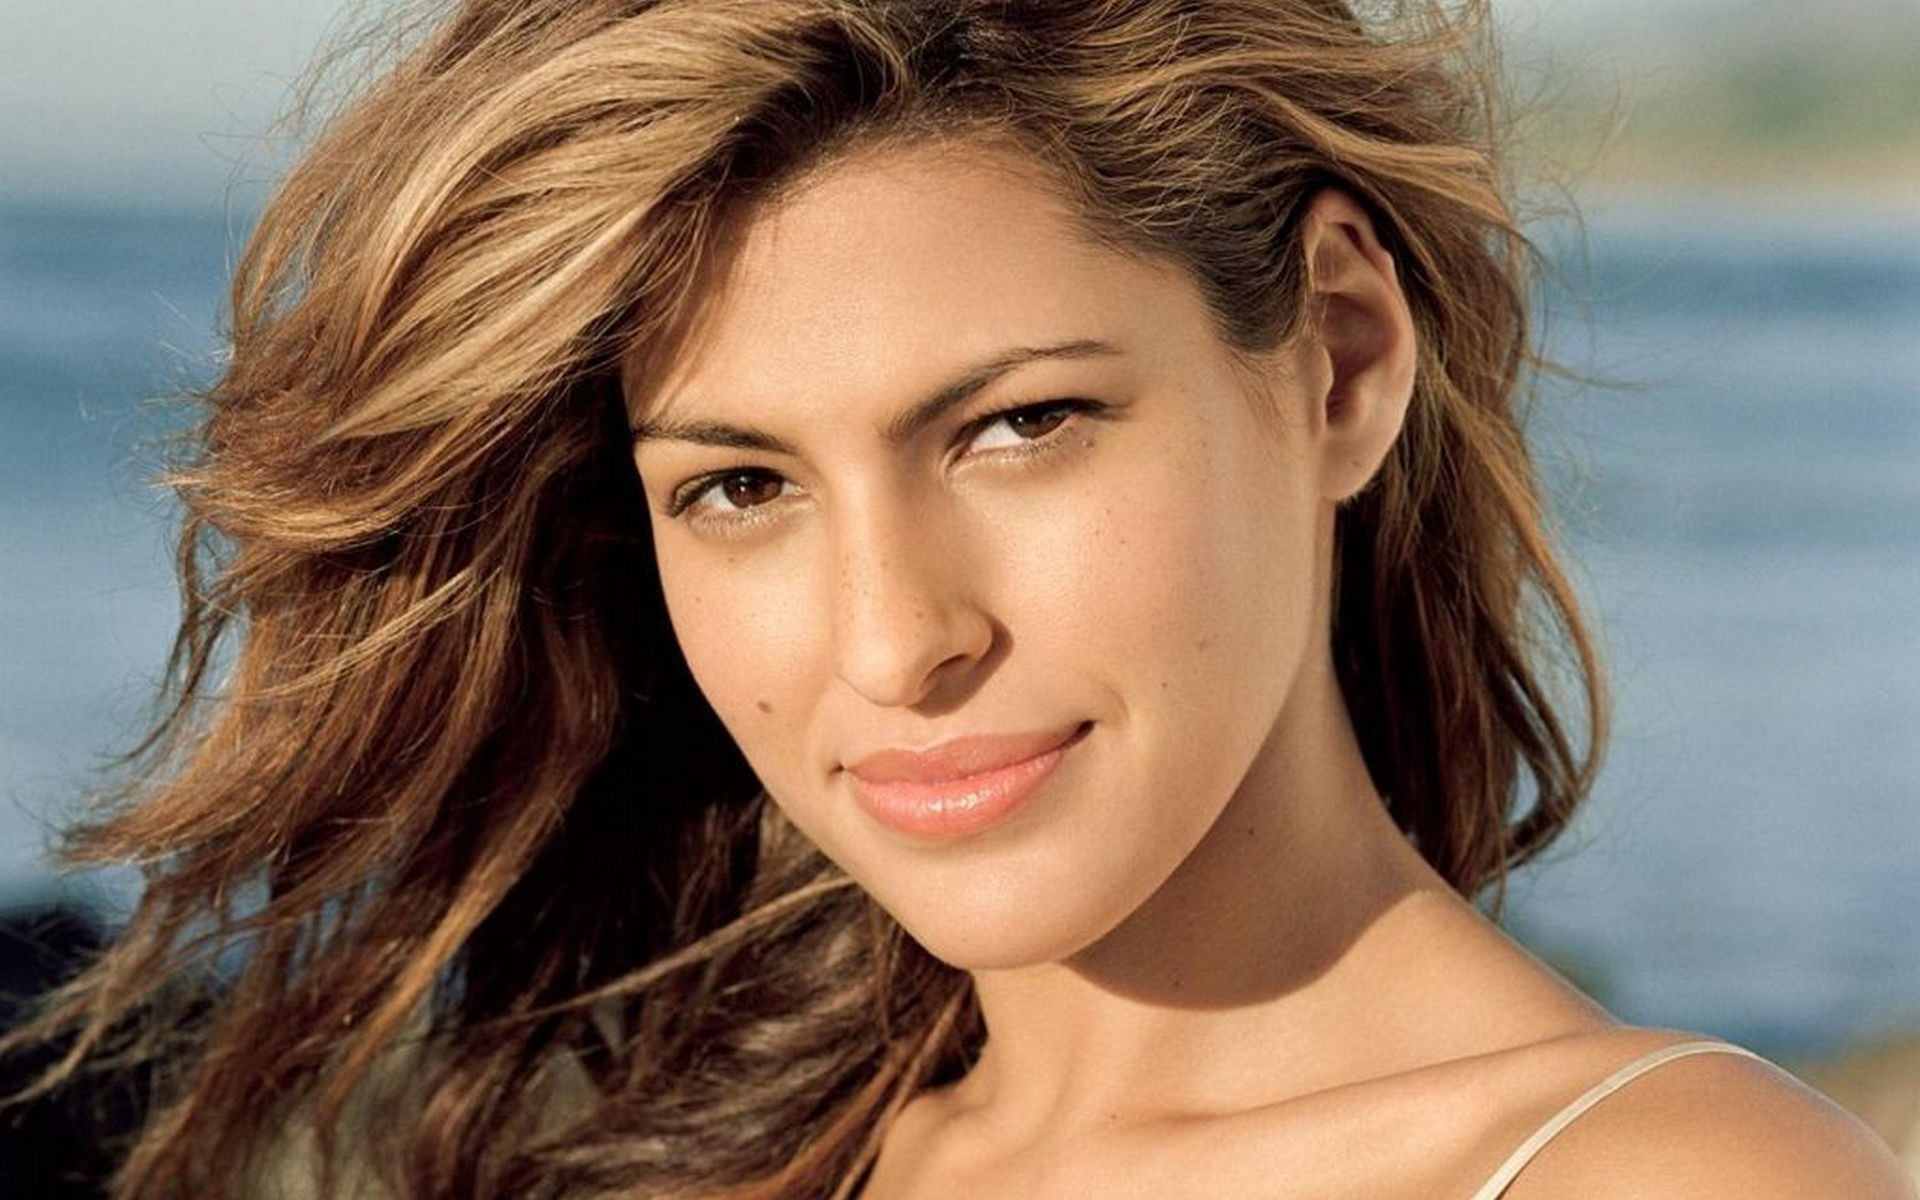 21 Gorgeous Hd Eva Mendes Wallpapers Hdwallsource Com